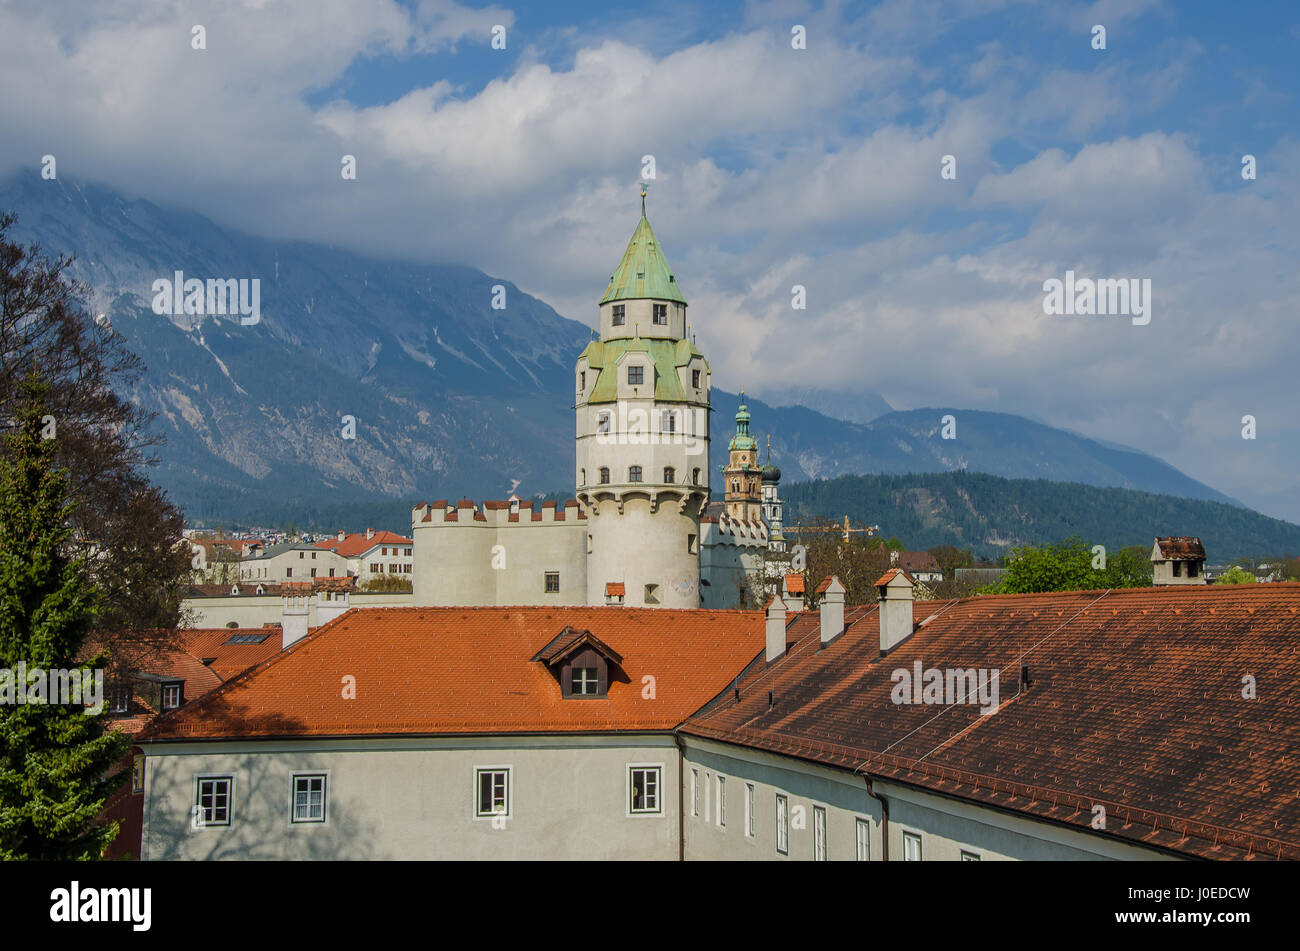 The historic town of Hall in Tyrol has a rich minting heritage. It has the distinction of being the cradle of the - Stock Image